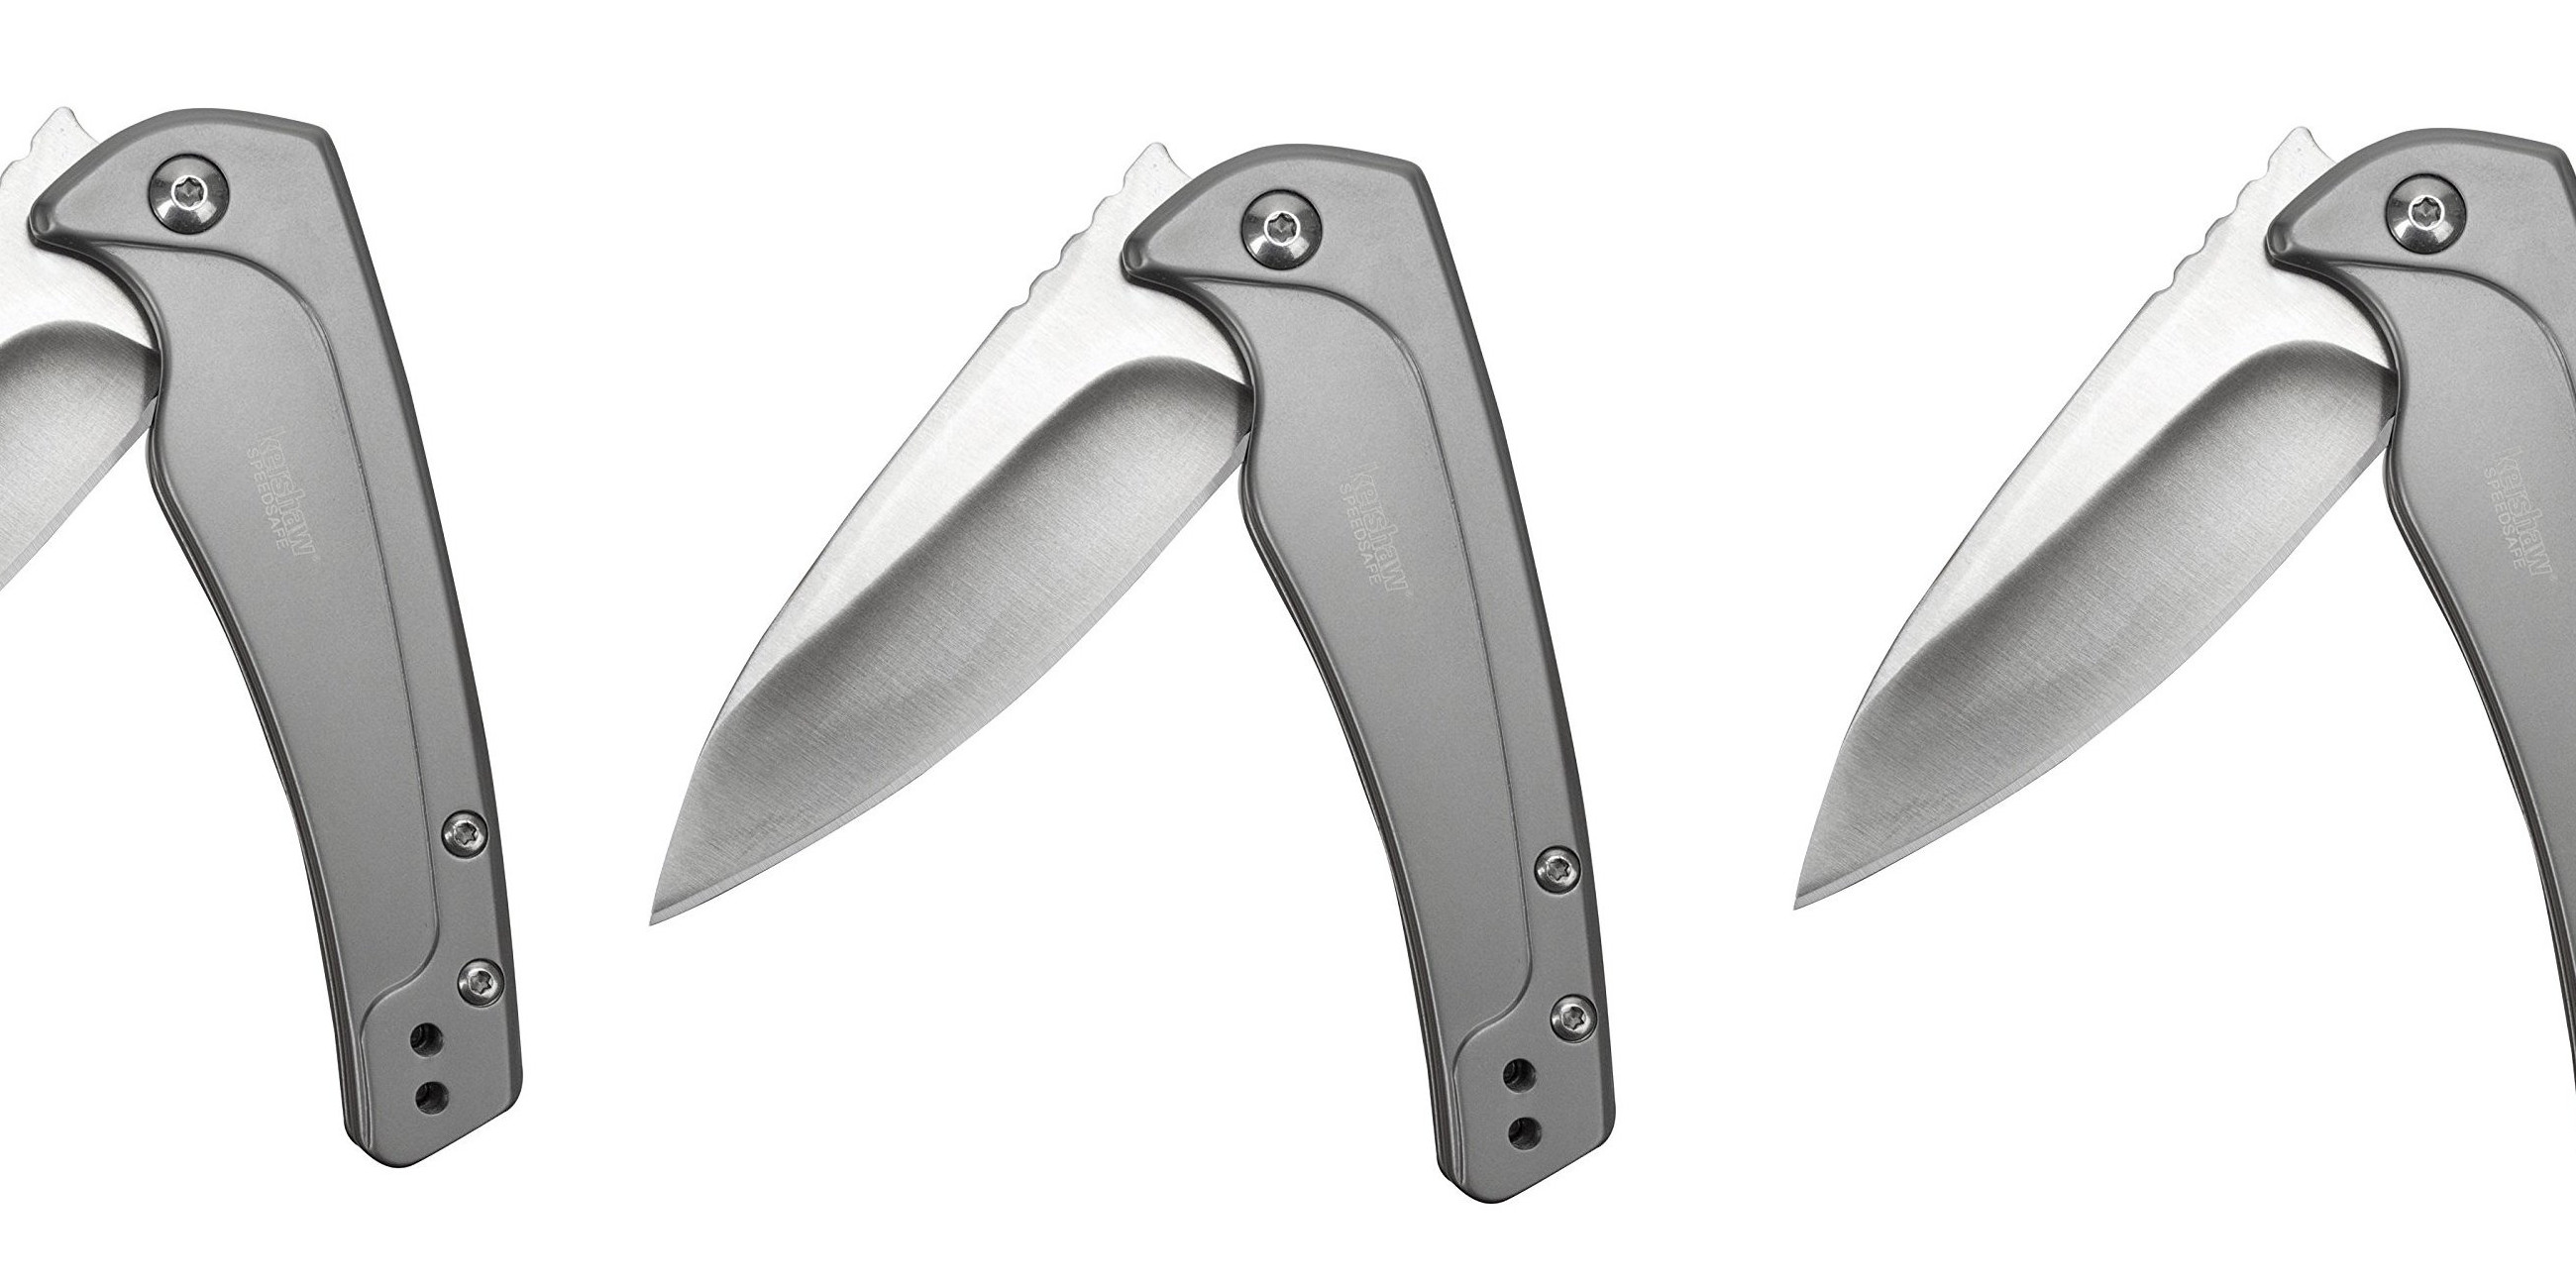 Kershaw's steel/titanium Intellect Pocket Knife now just $17 Prime shipped